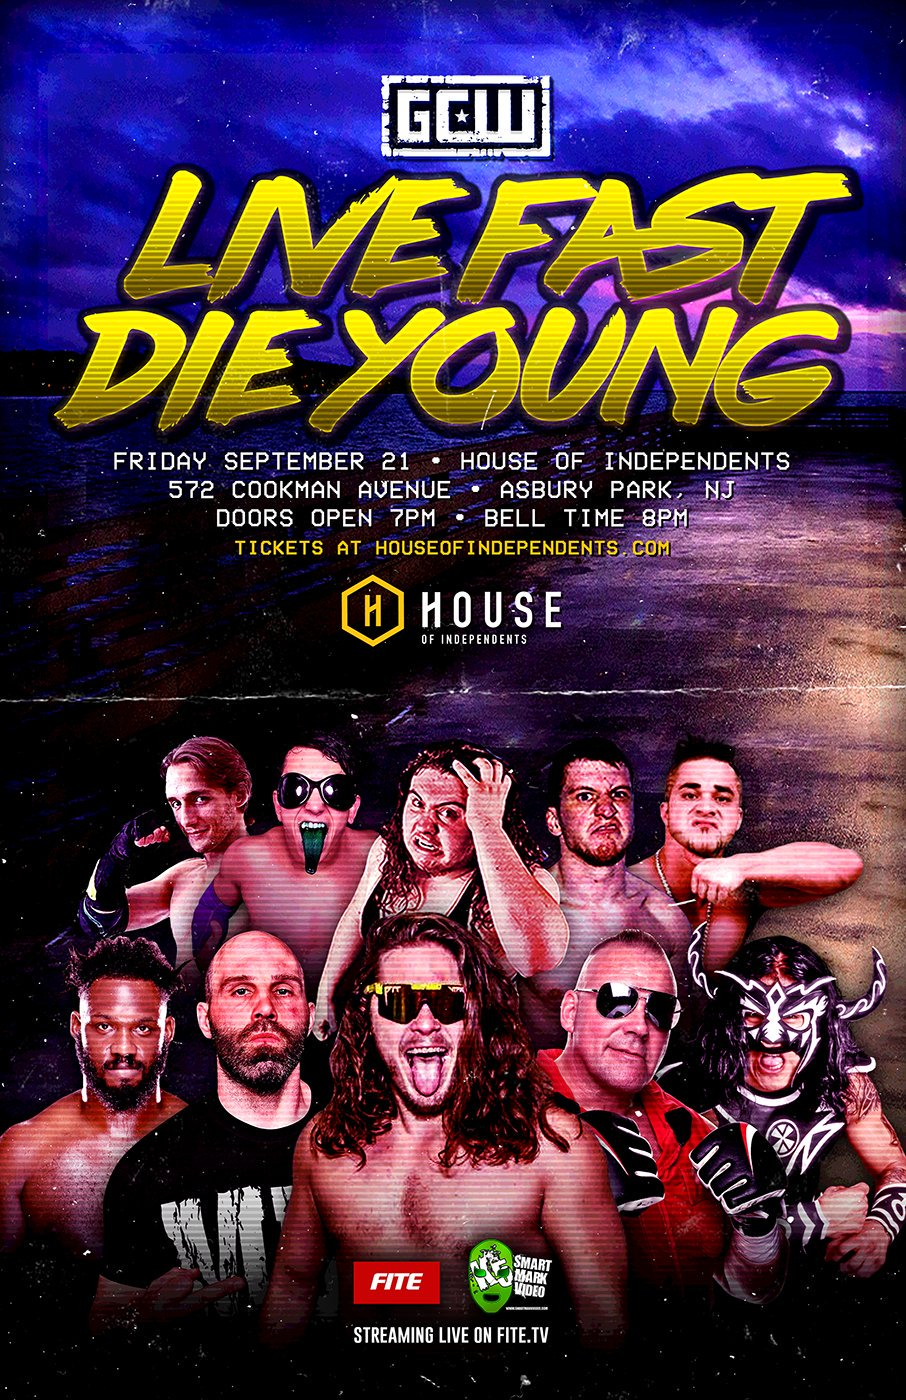 Game Changer Wrestling – Live Fast Die Young on Fite TV